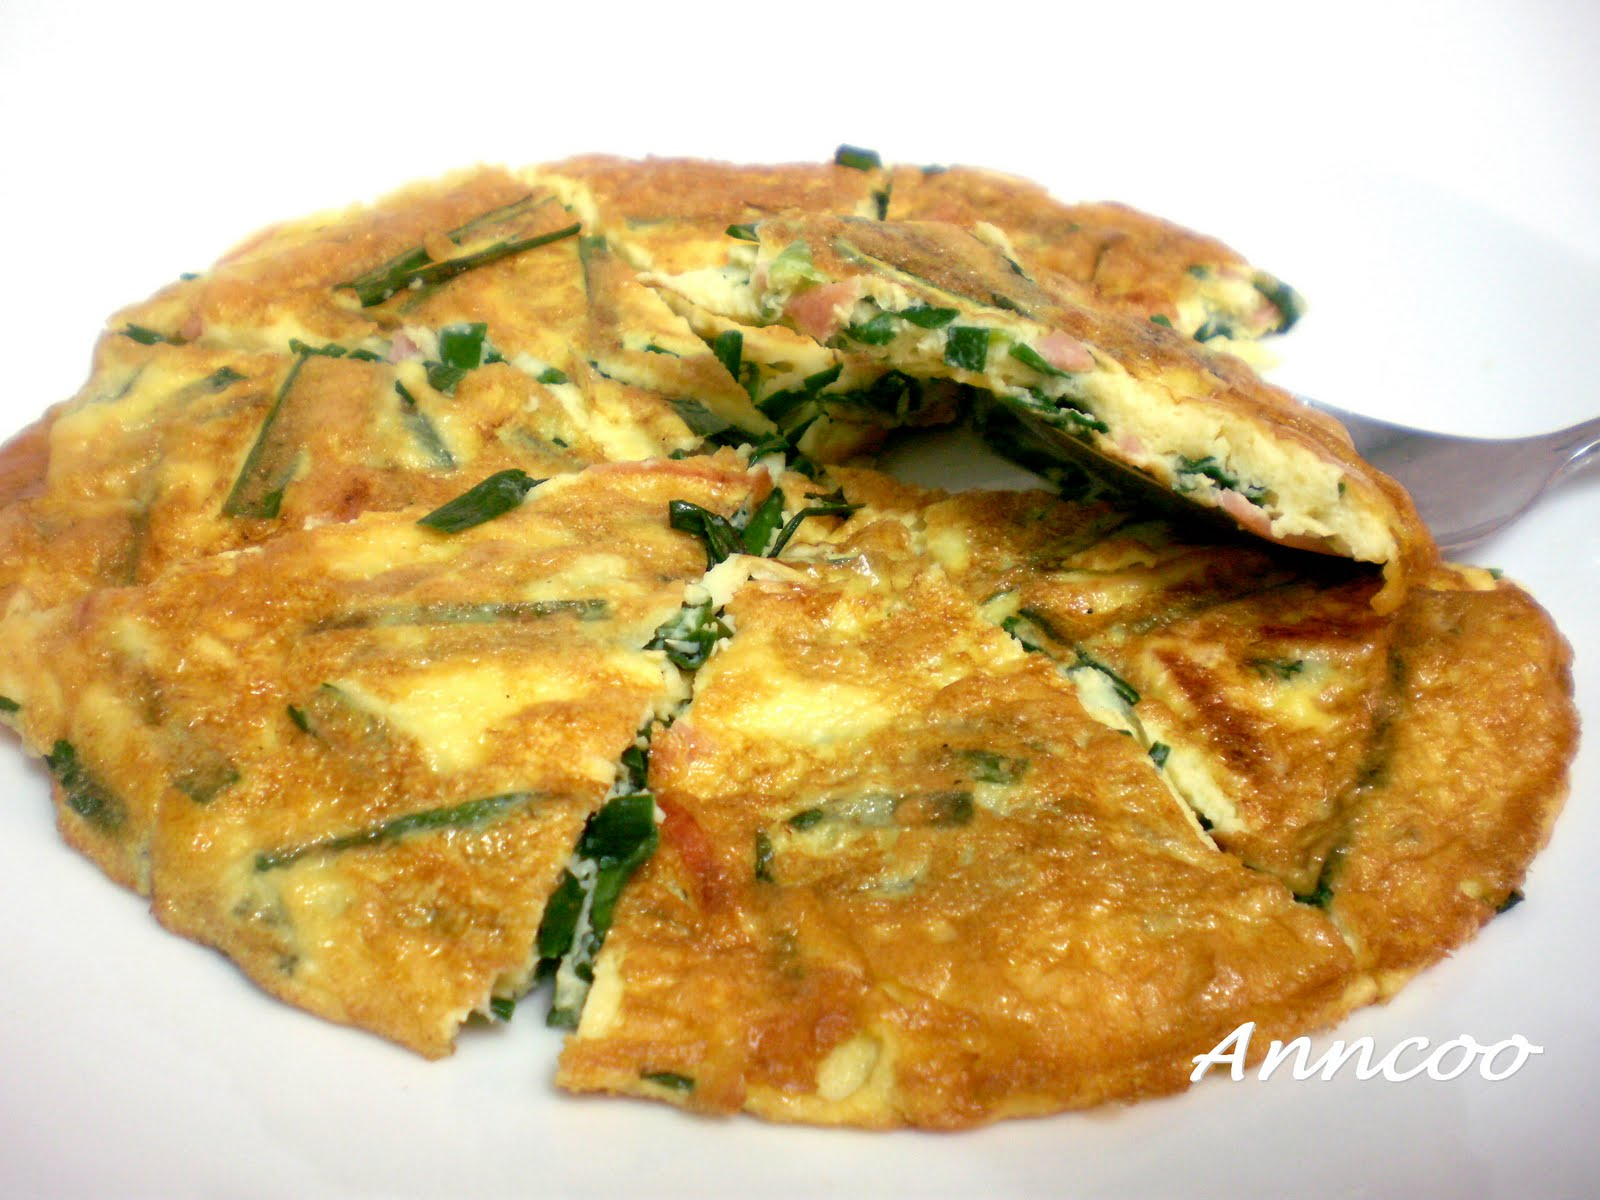 Omelette with Chives & Ham 韭菜火腿蛋 - Anncoo Journal